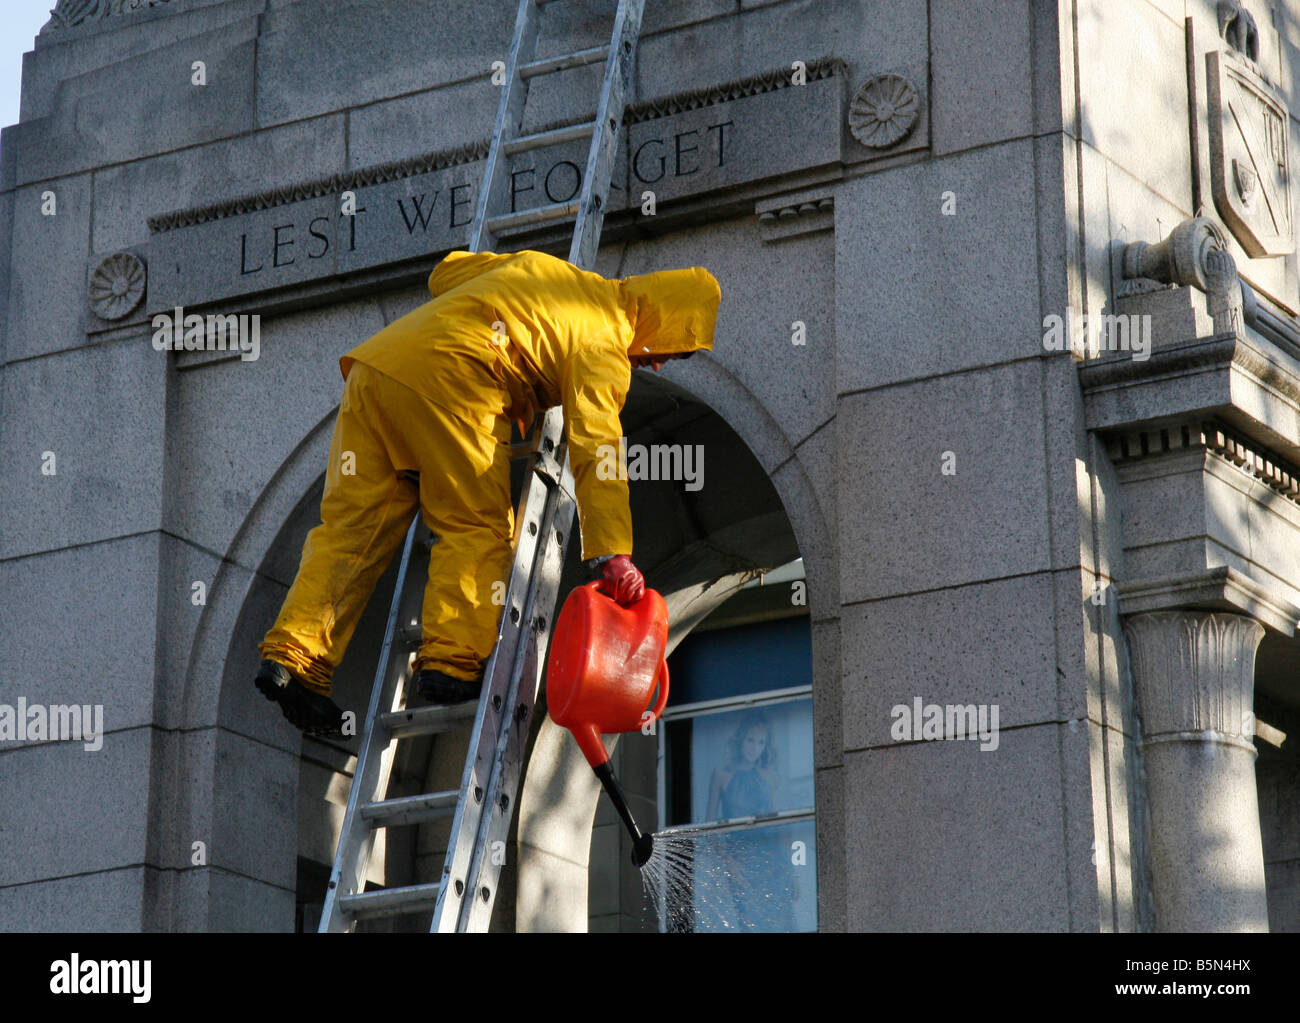 Council Worker Cleaning The Cenotaph in Bolton Lancashire UK Stock Photo